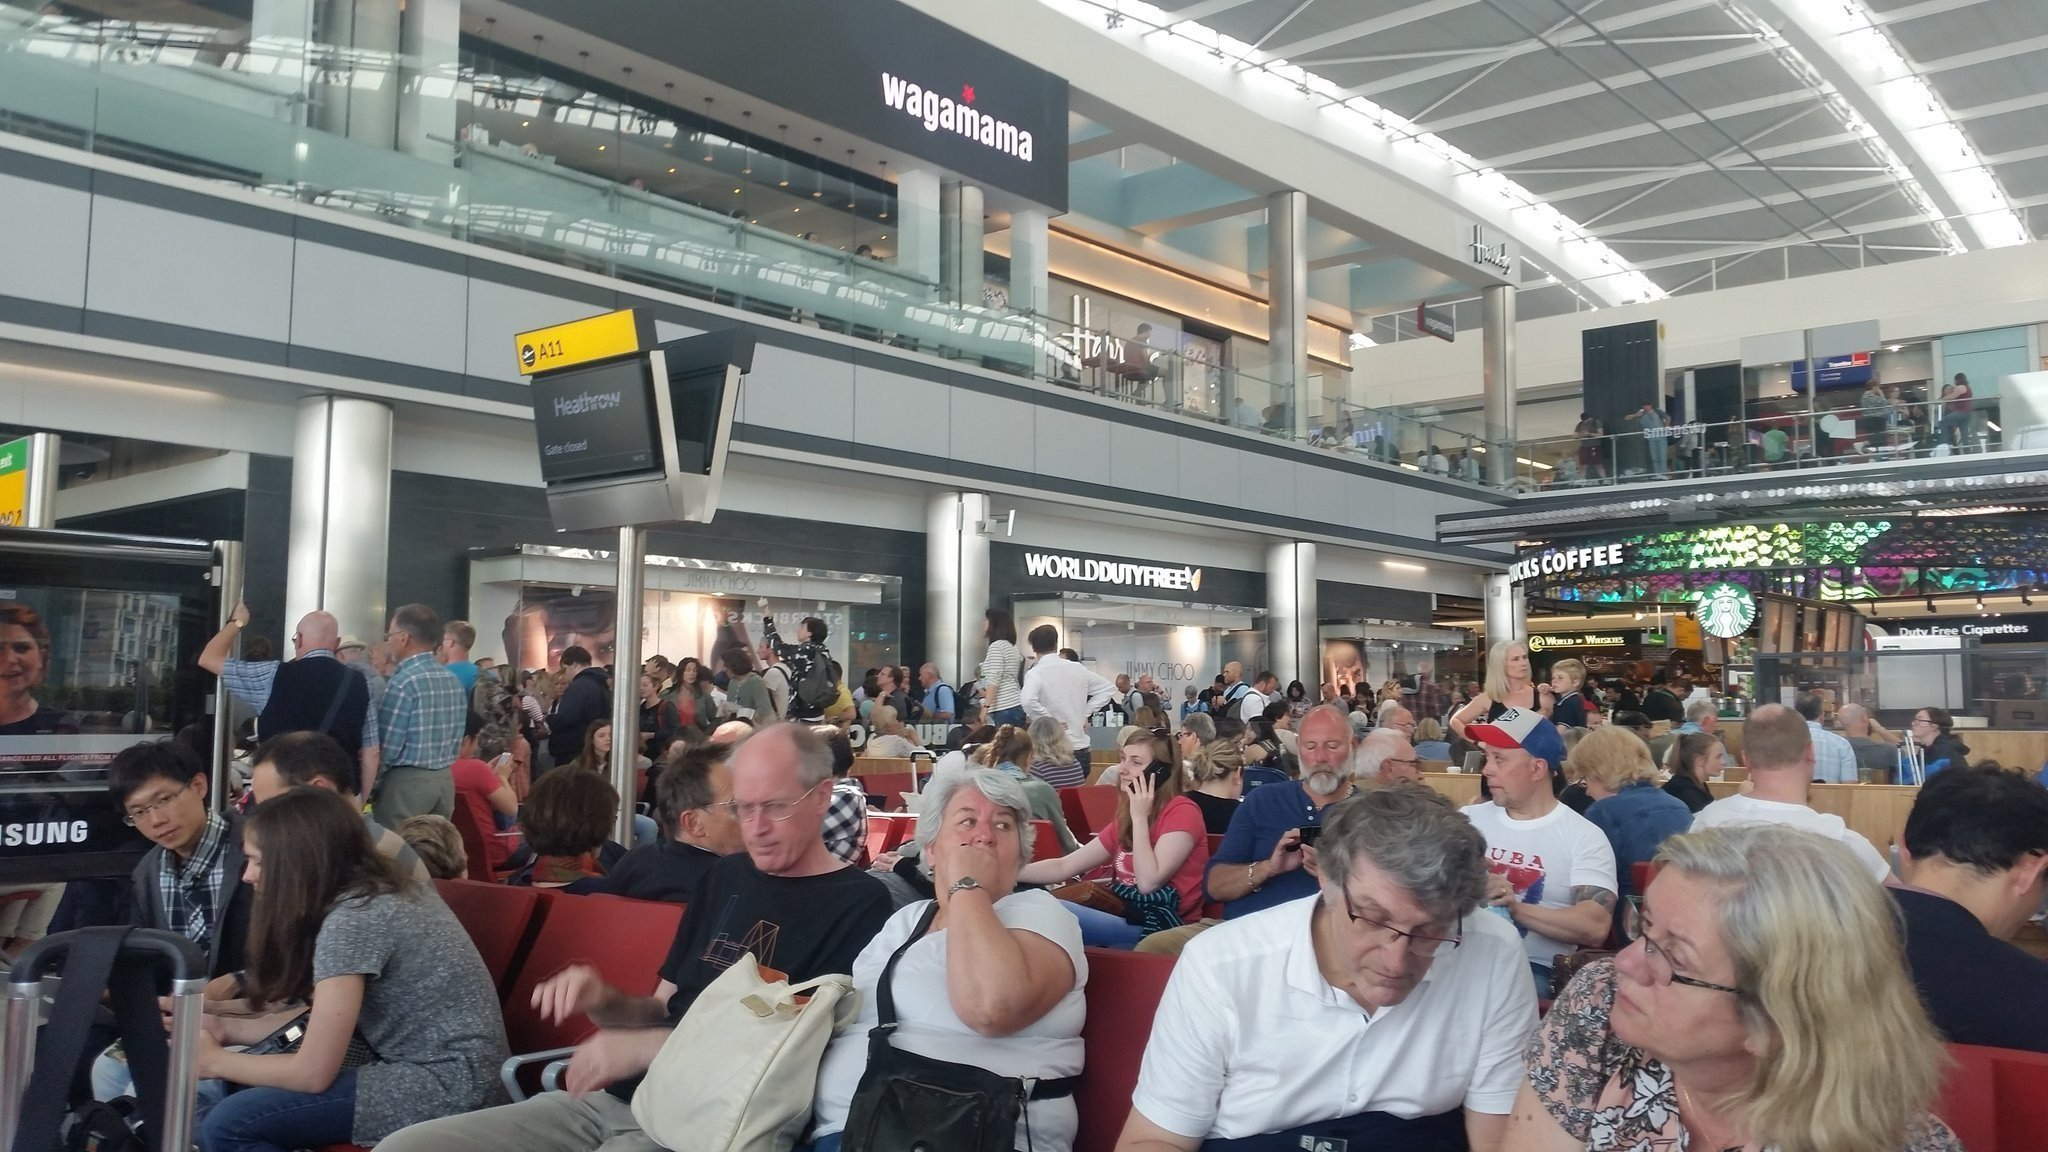 Caption: Waiting area at Heathrow airport where passengers are waiting for details about flights.